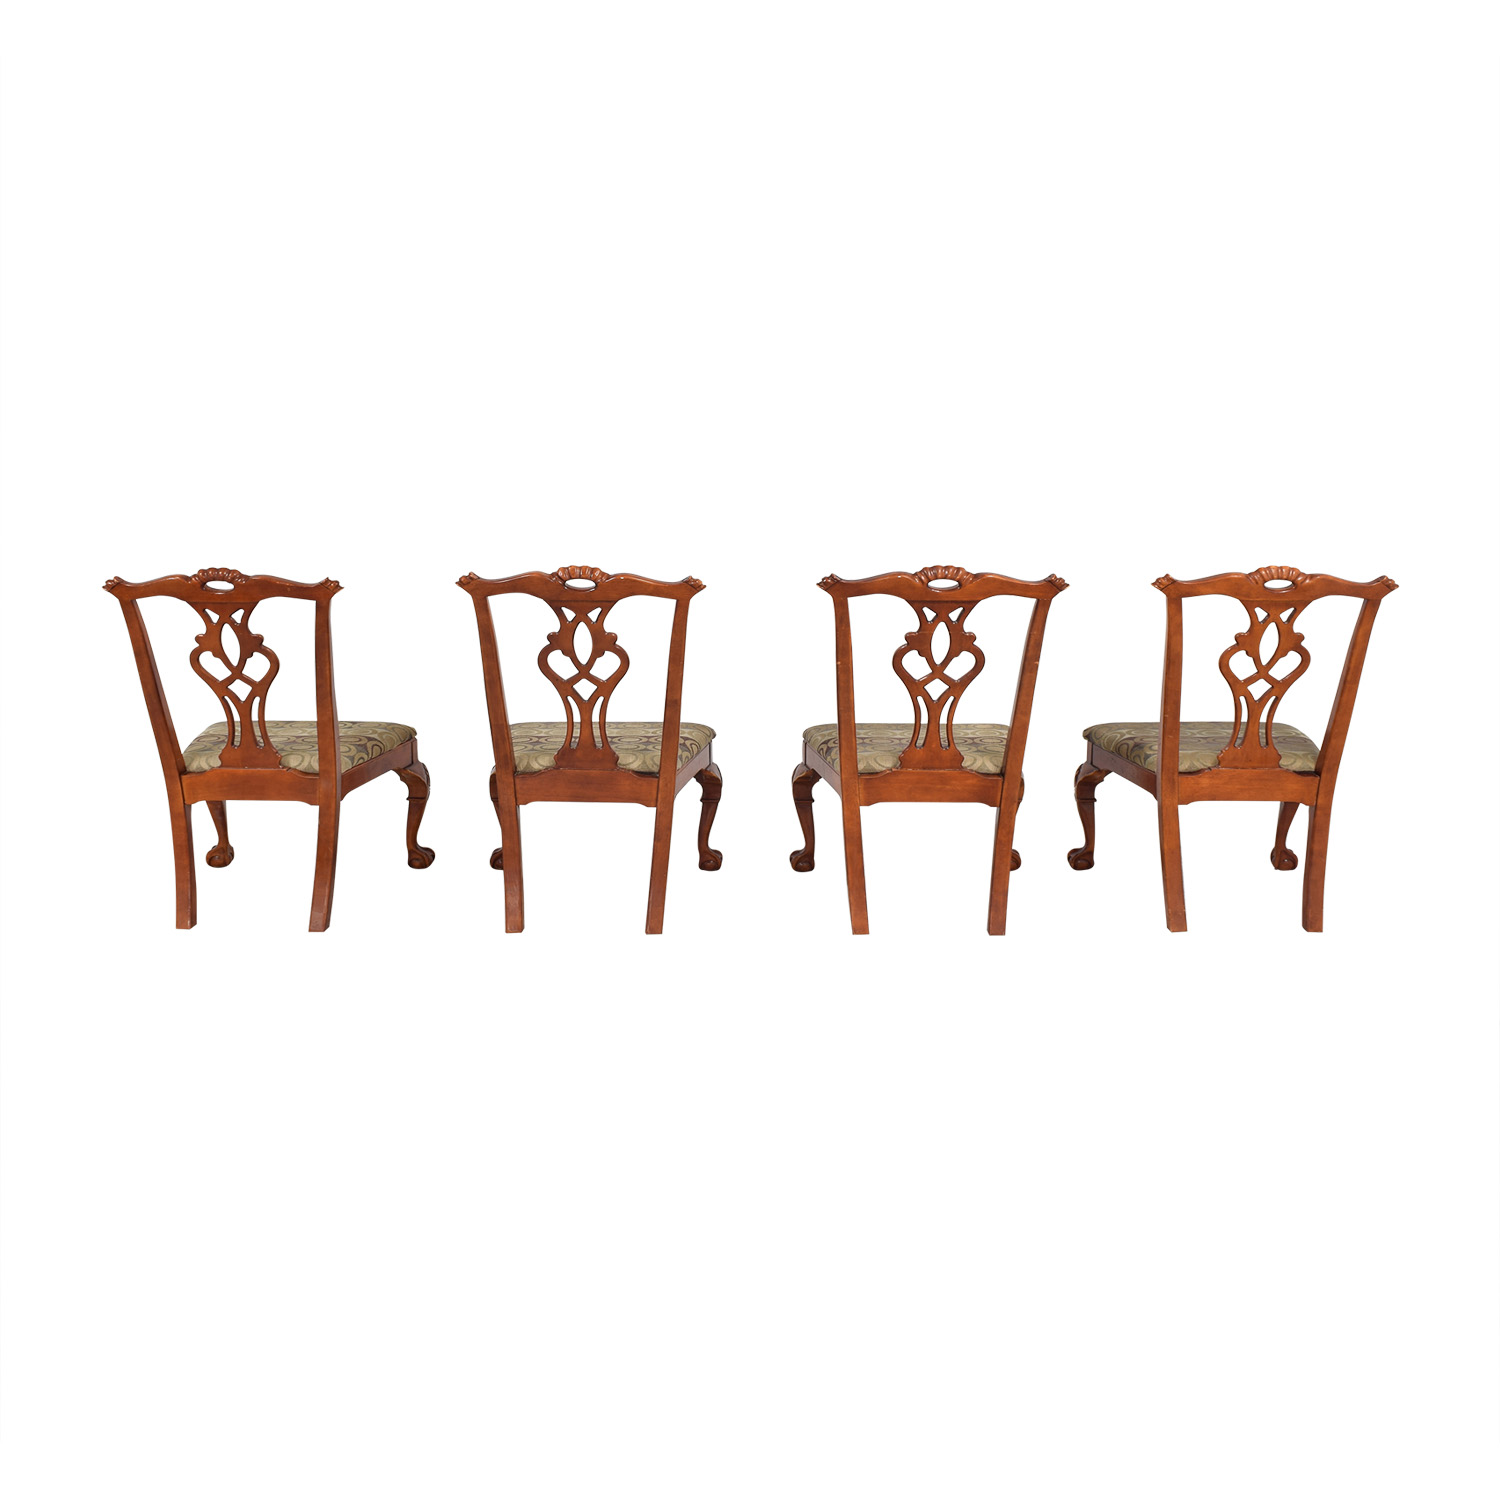 Bernhardt Upholstered Dining Chairs / Chairs